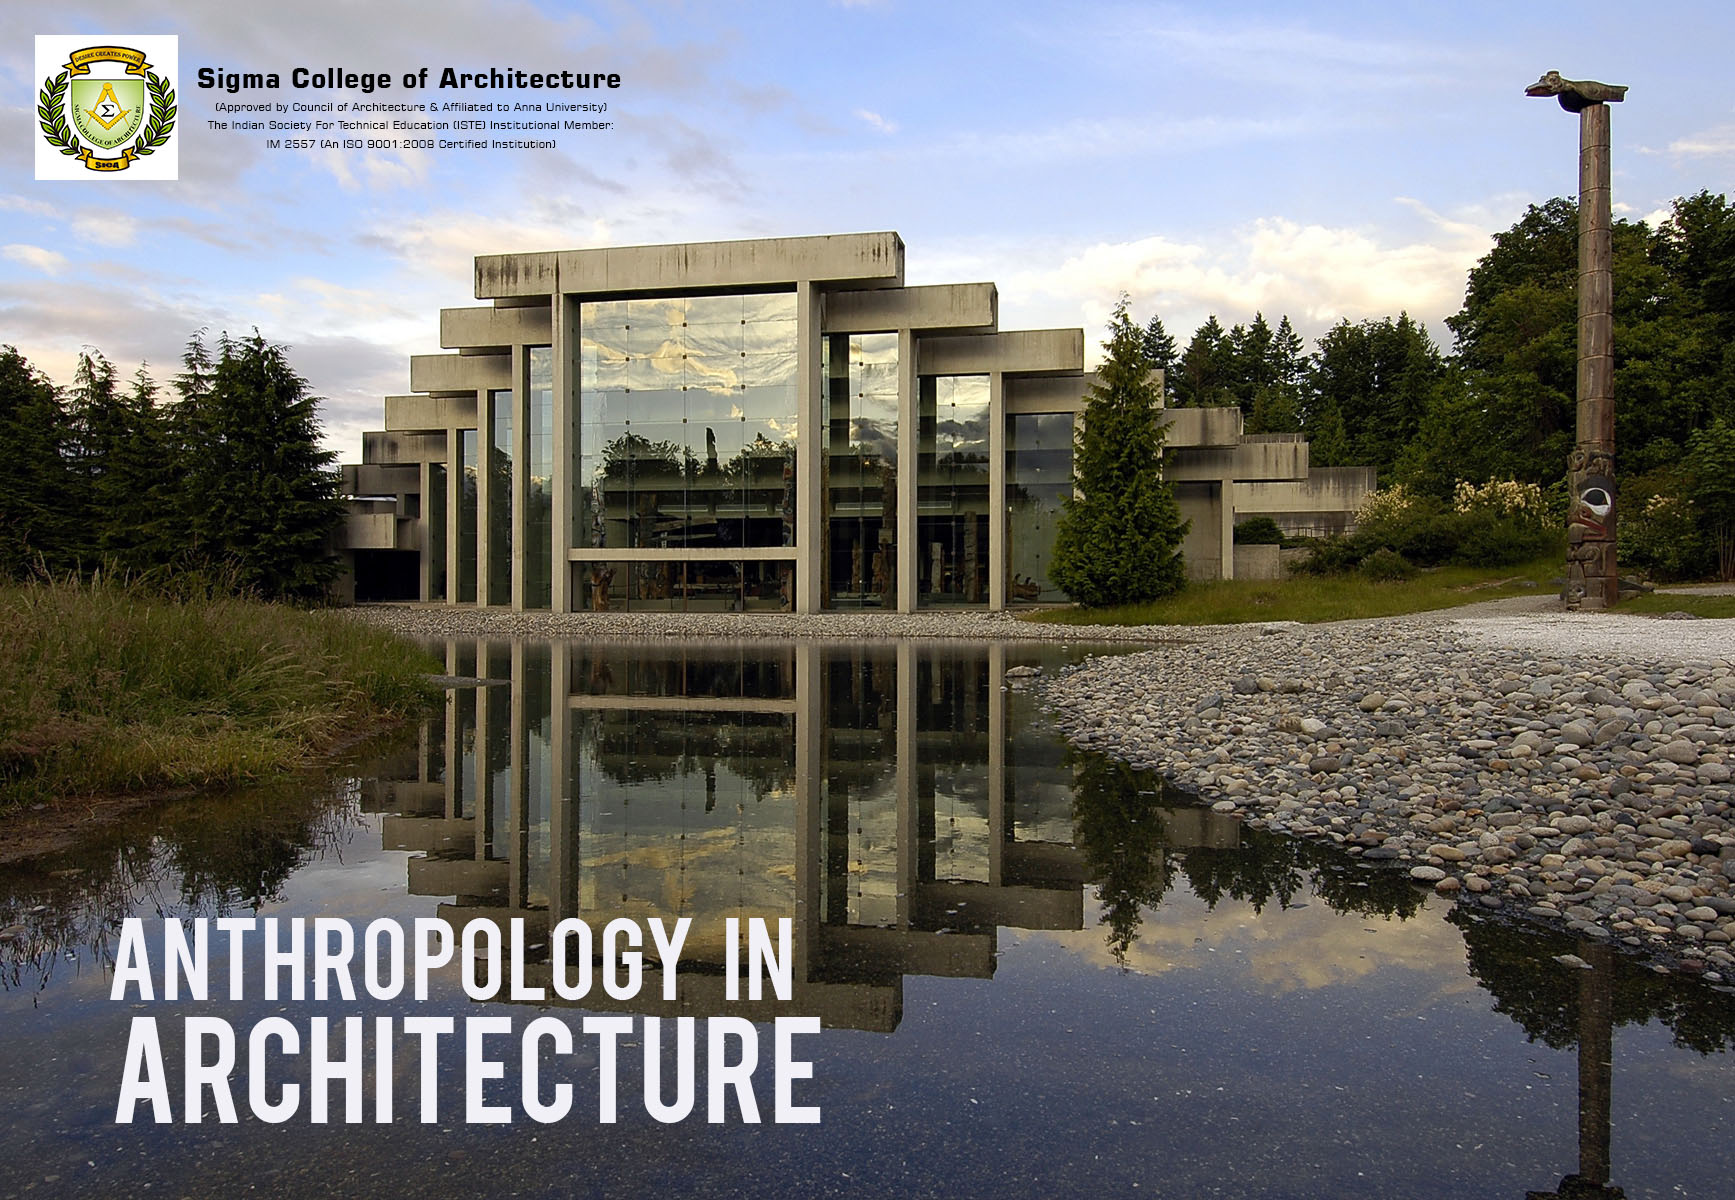 Anthropology in Architecture